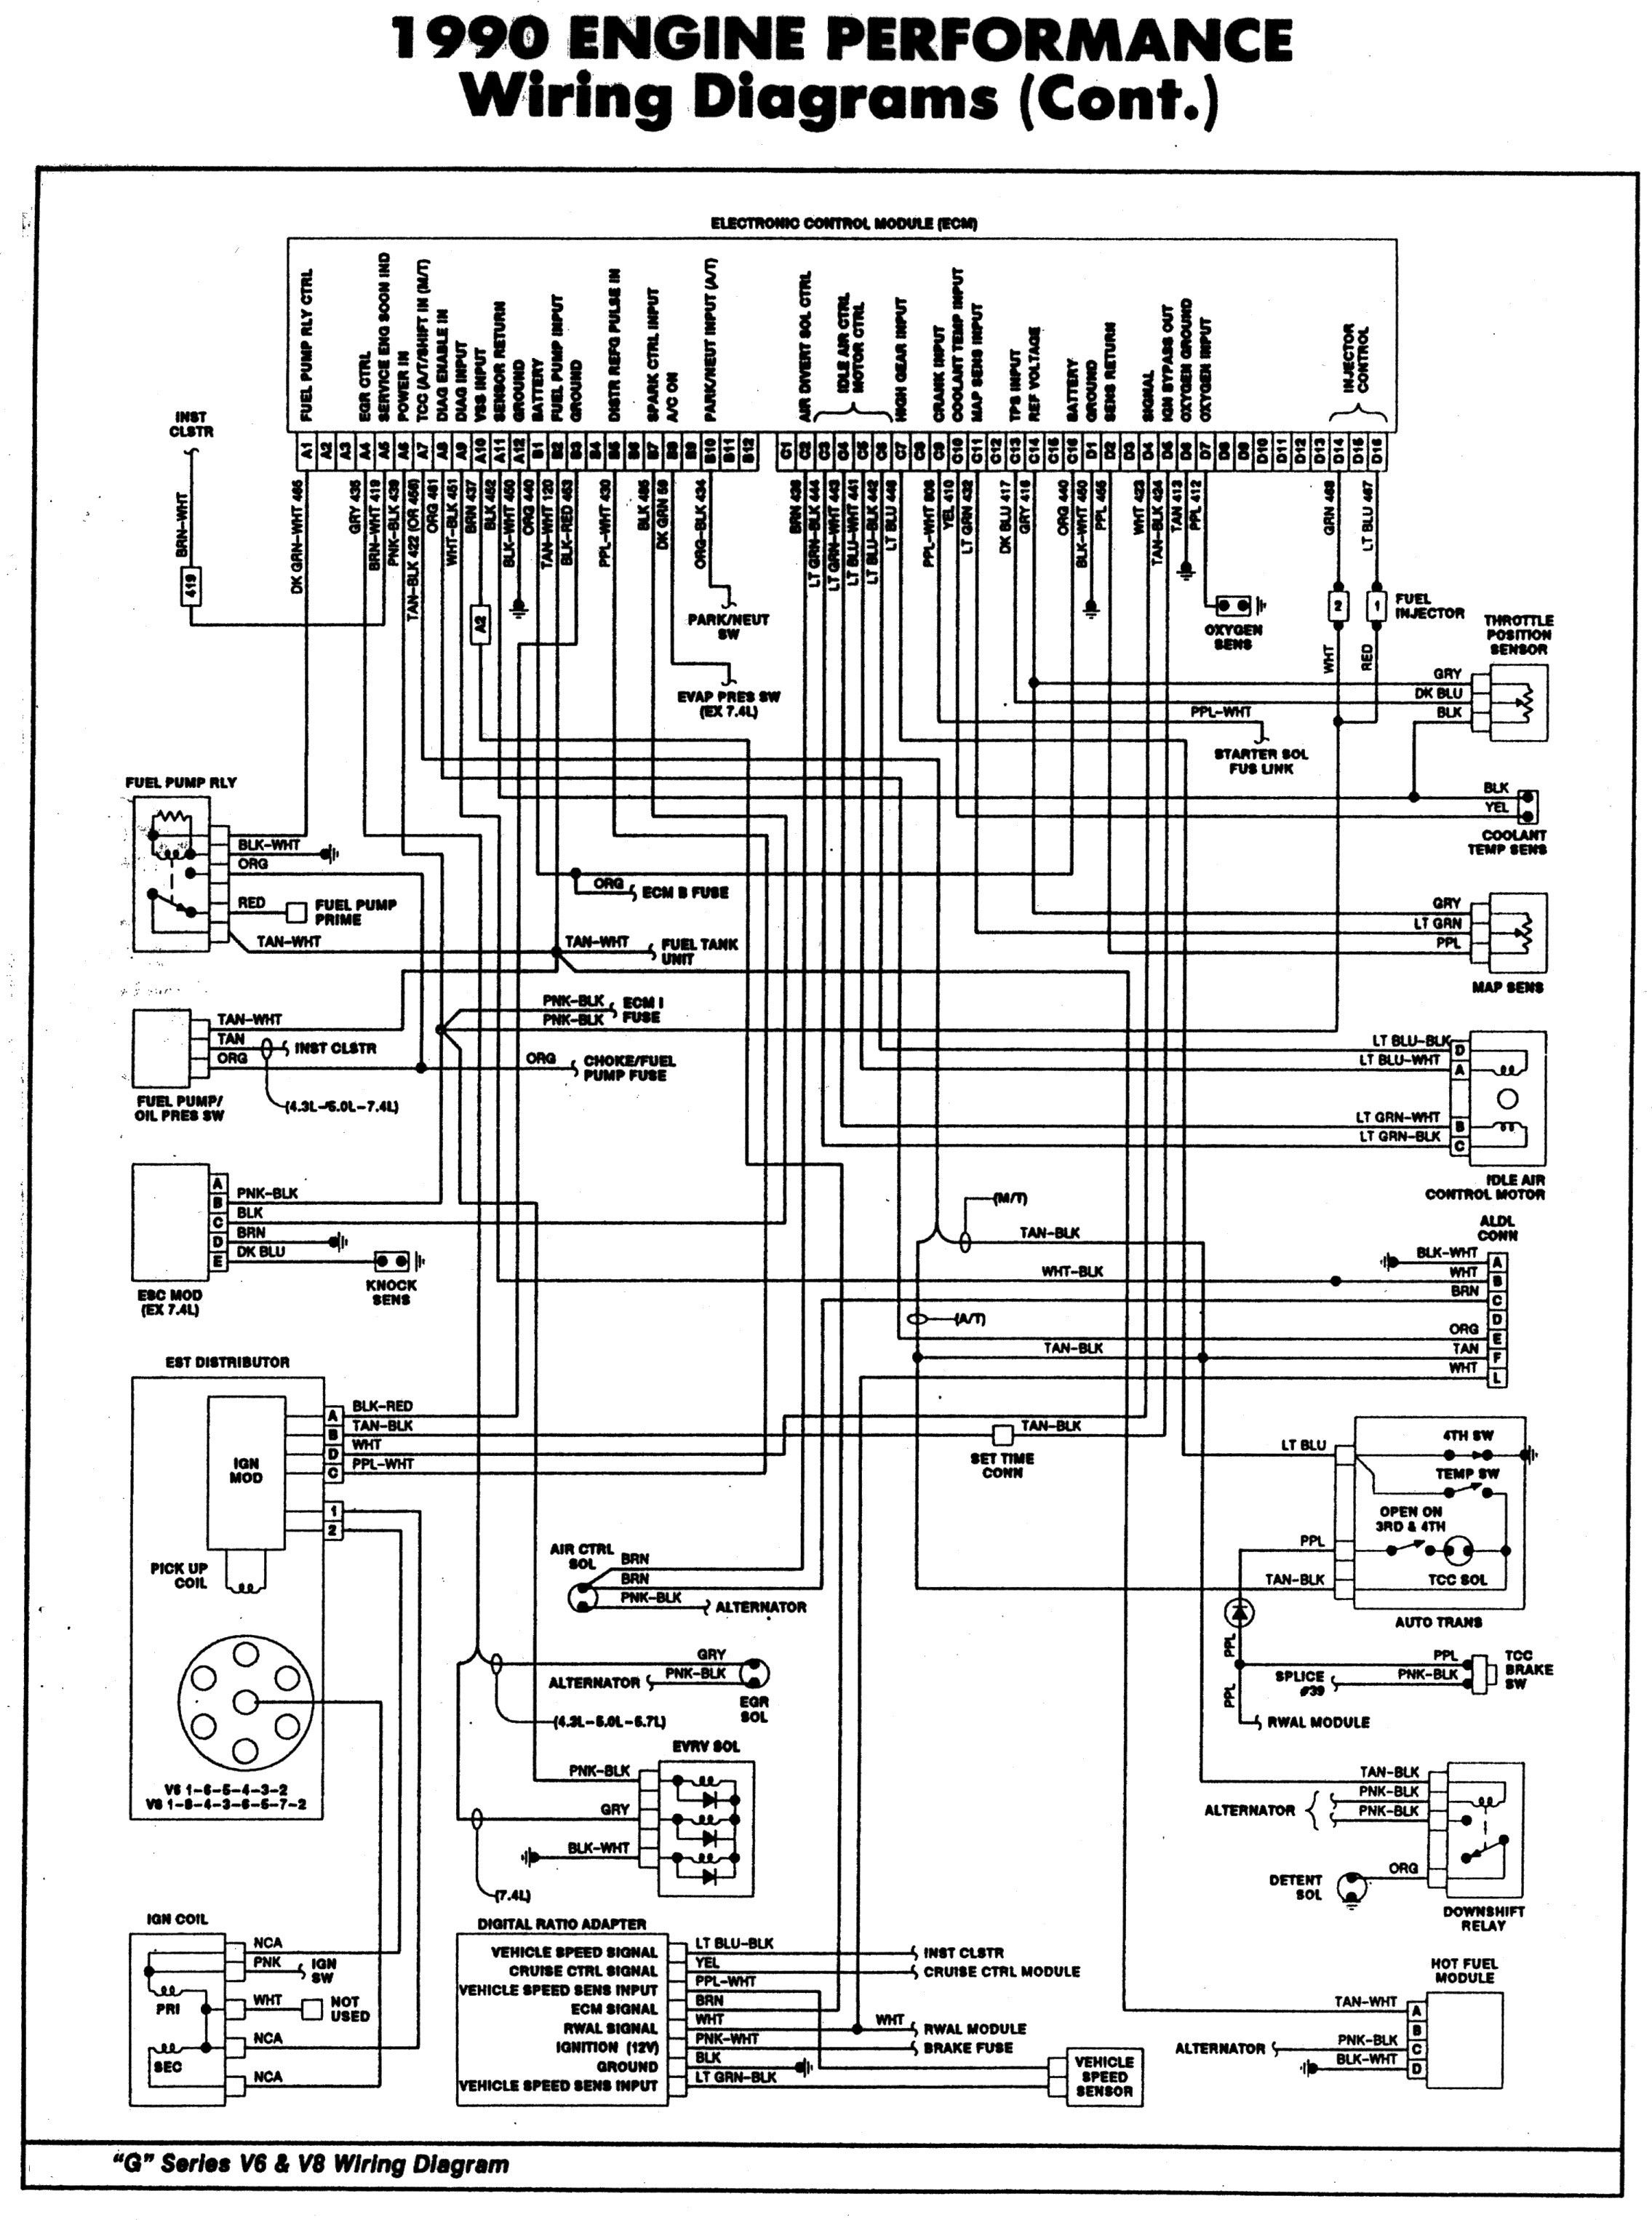 small resolution of 94 chevy k1500 wiring diagram wiring diagram forward 1990 chevy k1500 wiring diagram 94 chevy wiring